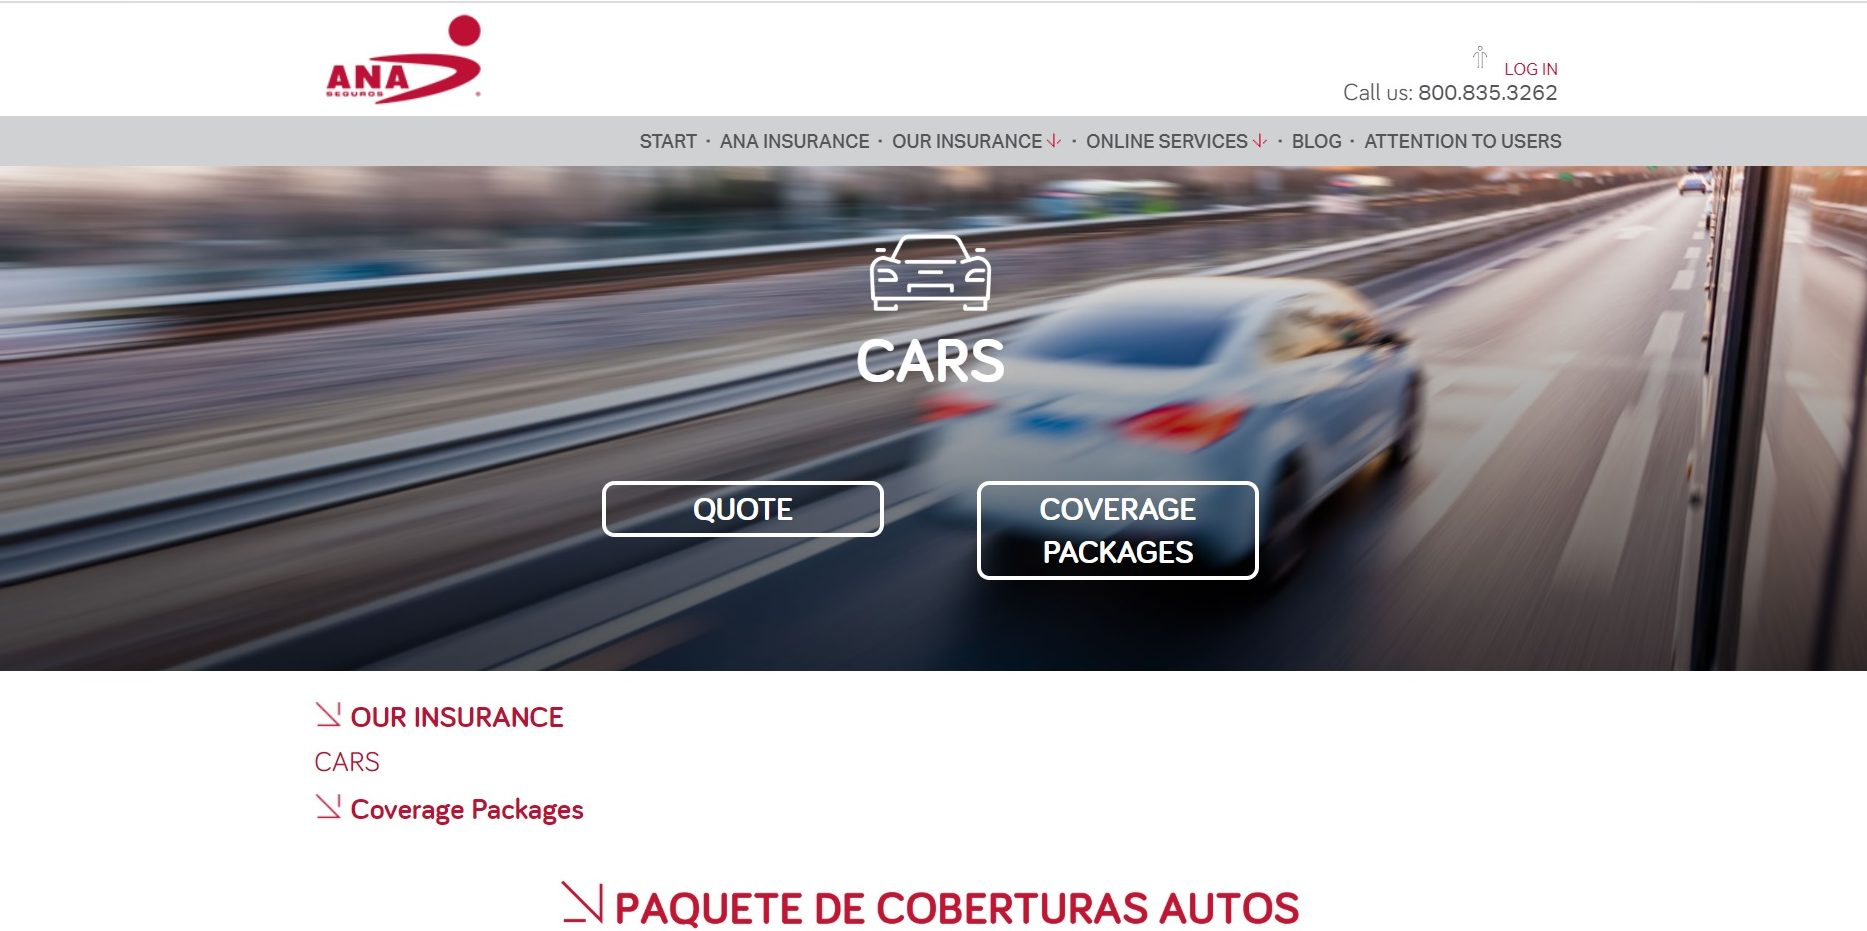 Ana Compania De Seguros Auto Insurance Online Quote Start Page